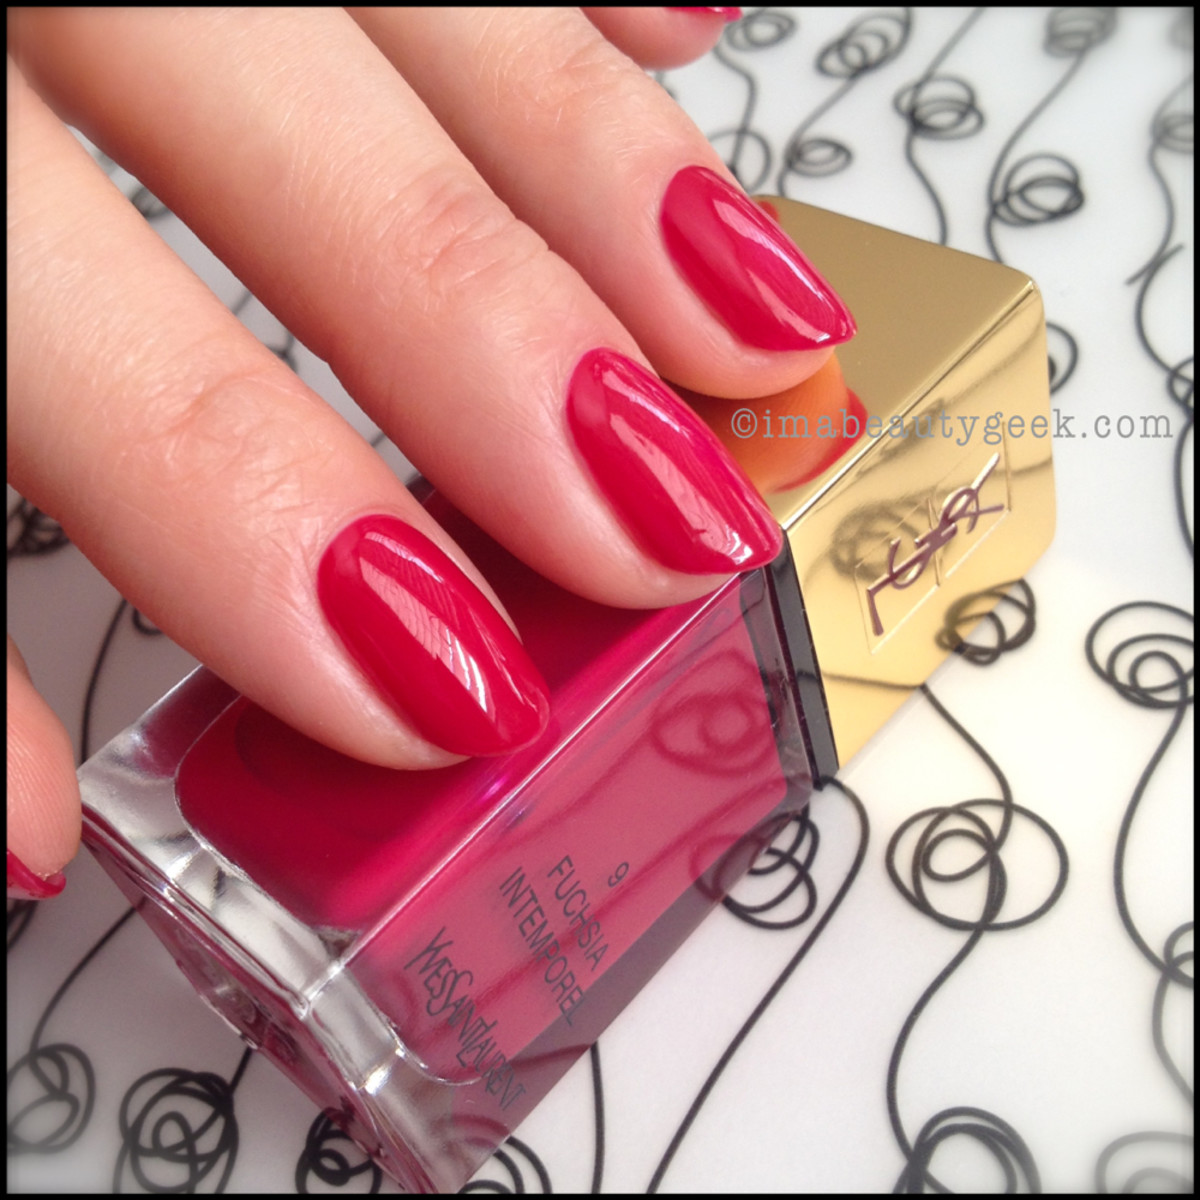 YSL Fuchsia Intemporel 9_YSL polish